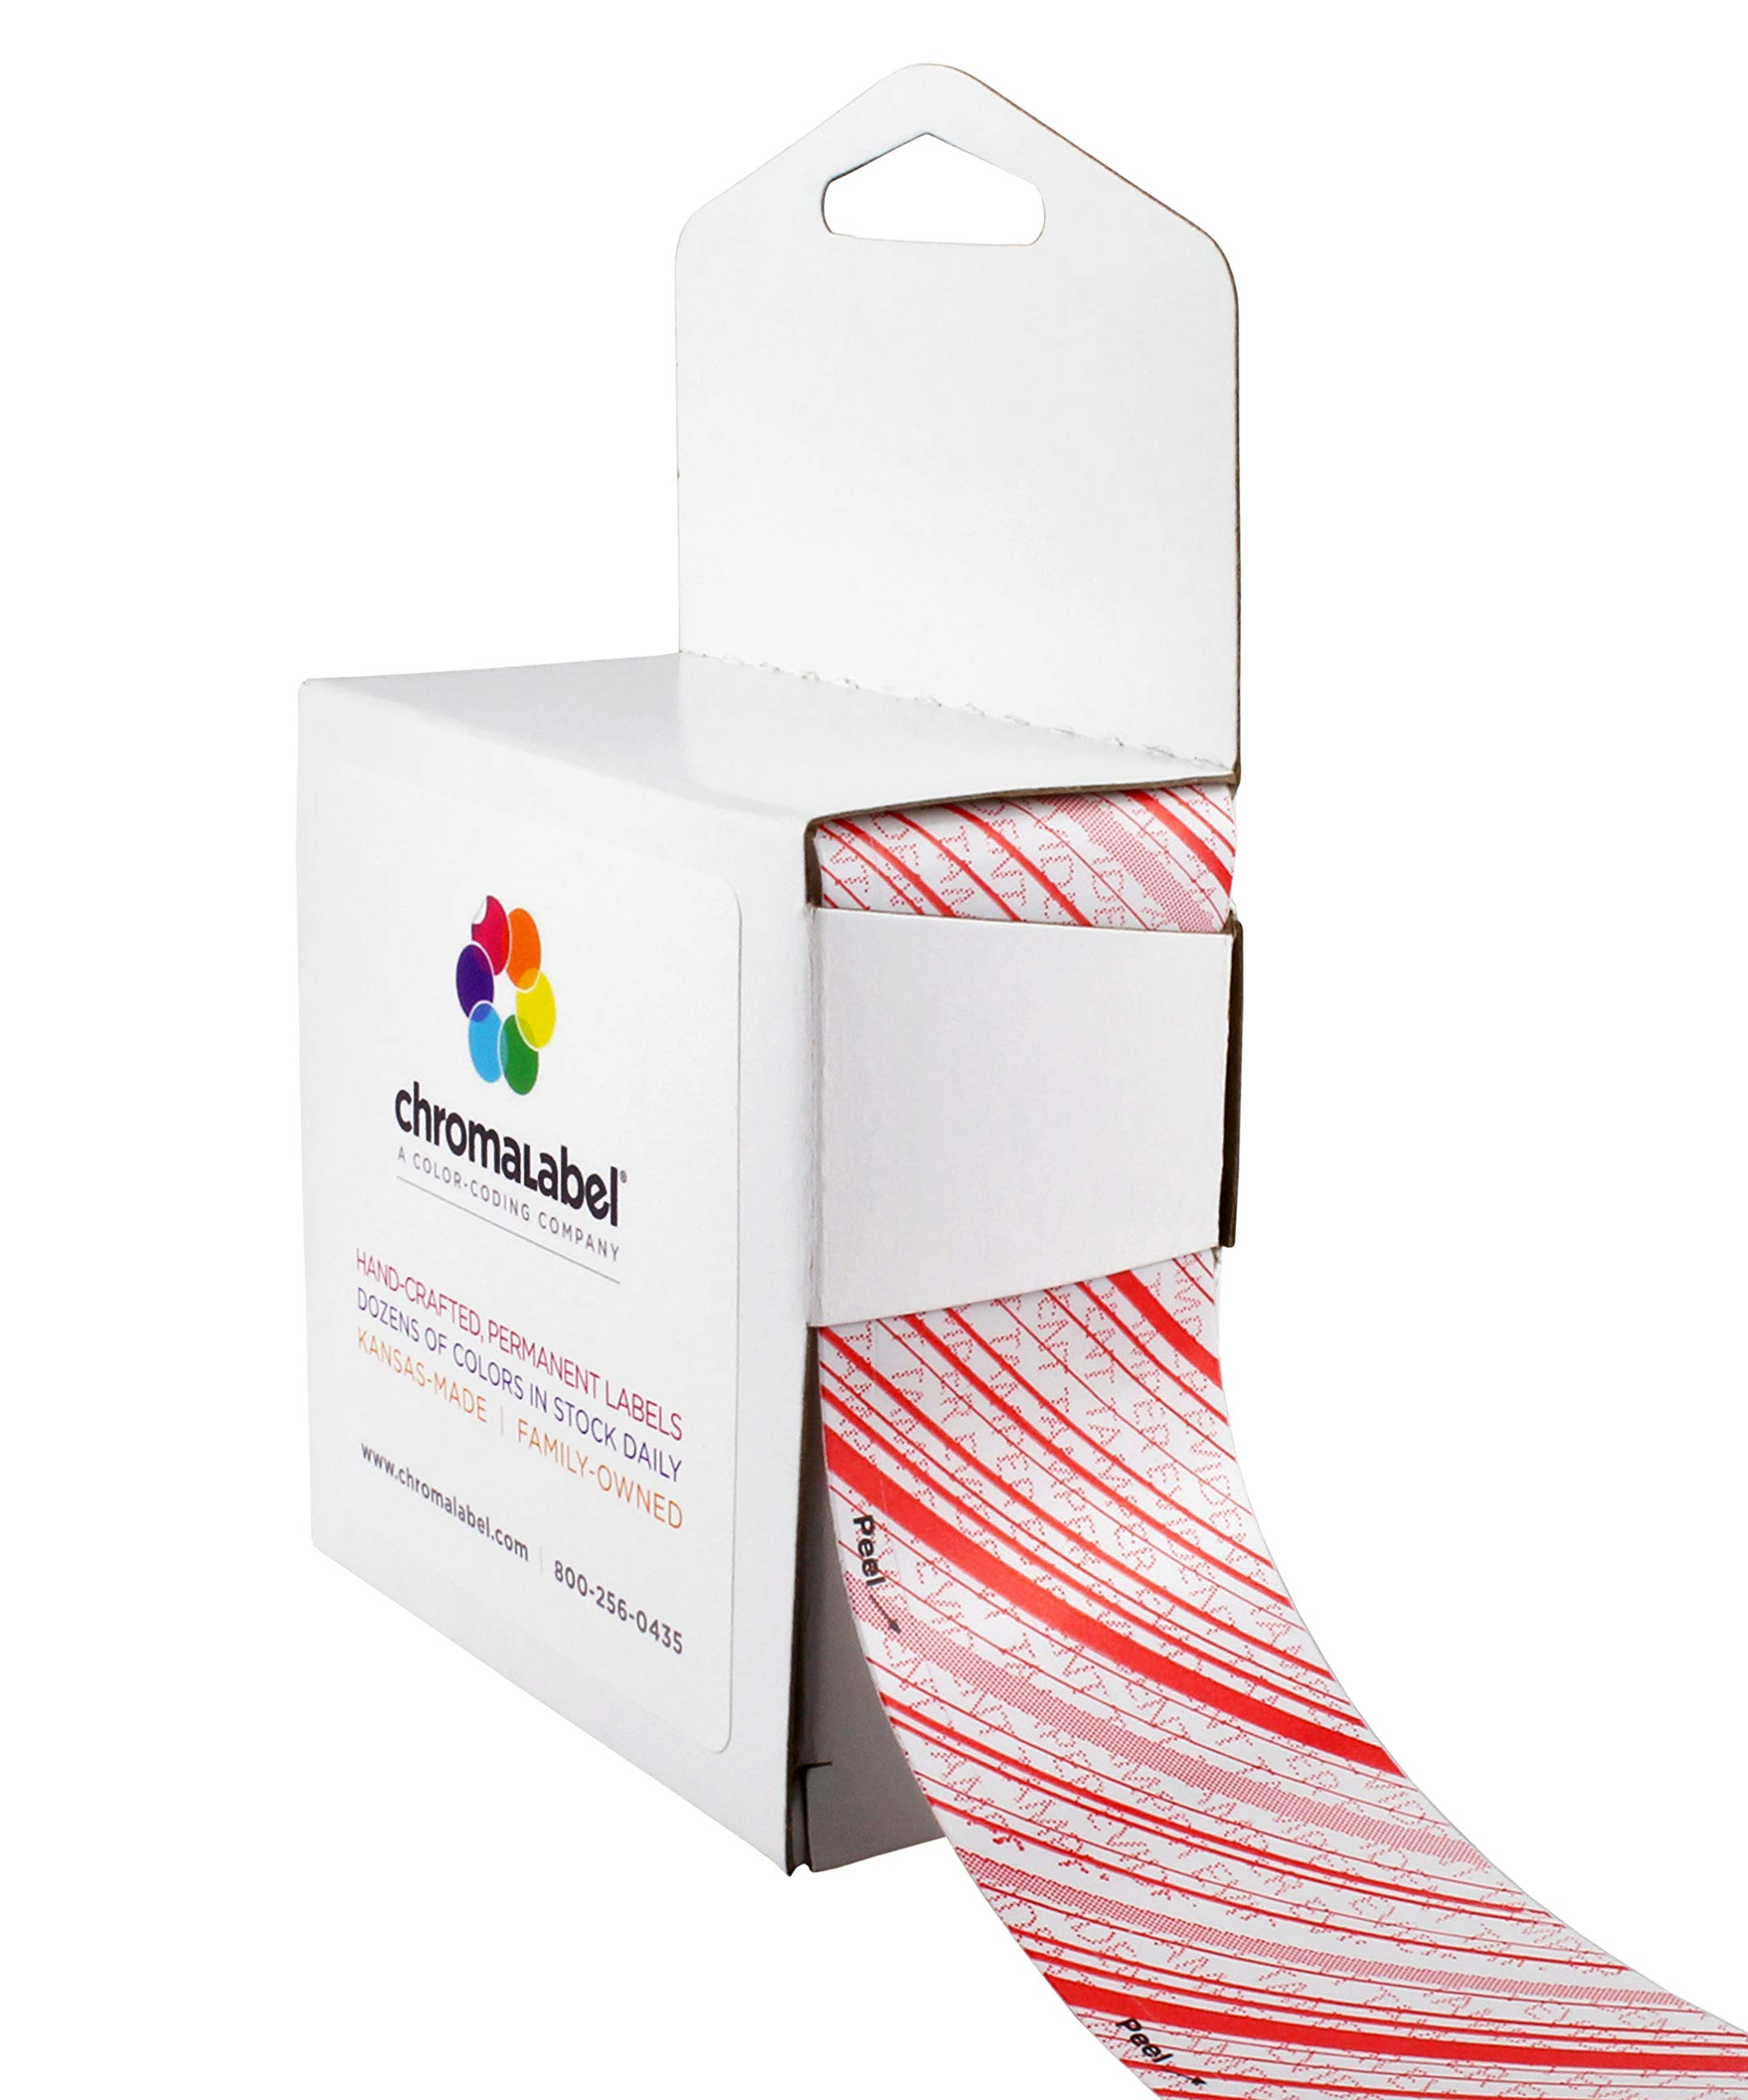 ChromaLabel 1-3/8 Inch Tamper Evident Security Tape, 480 Inch Roll in Dispenser Box, Red and White with Diagonal Lines